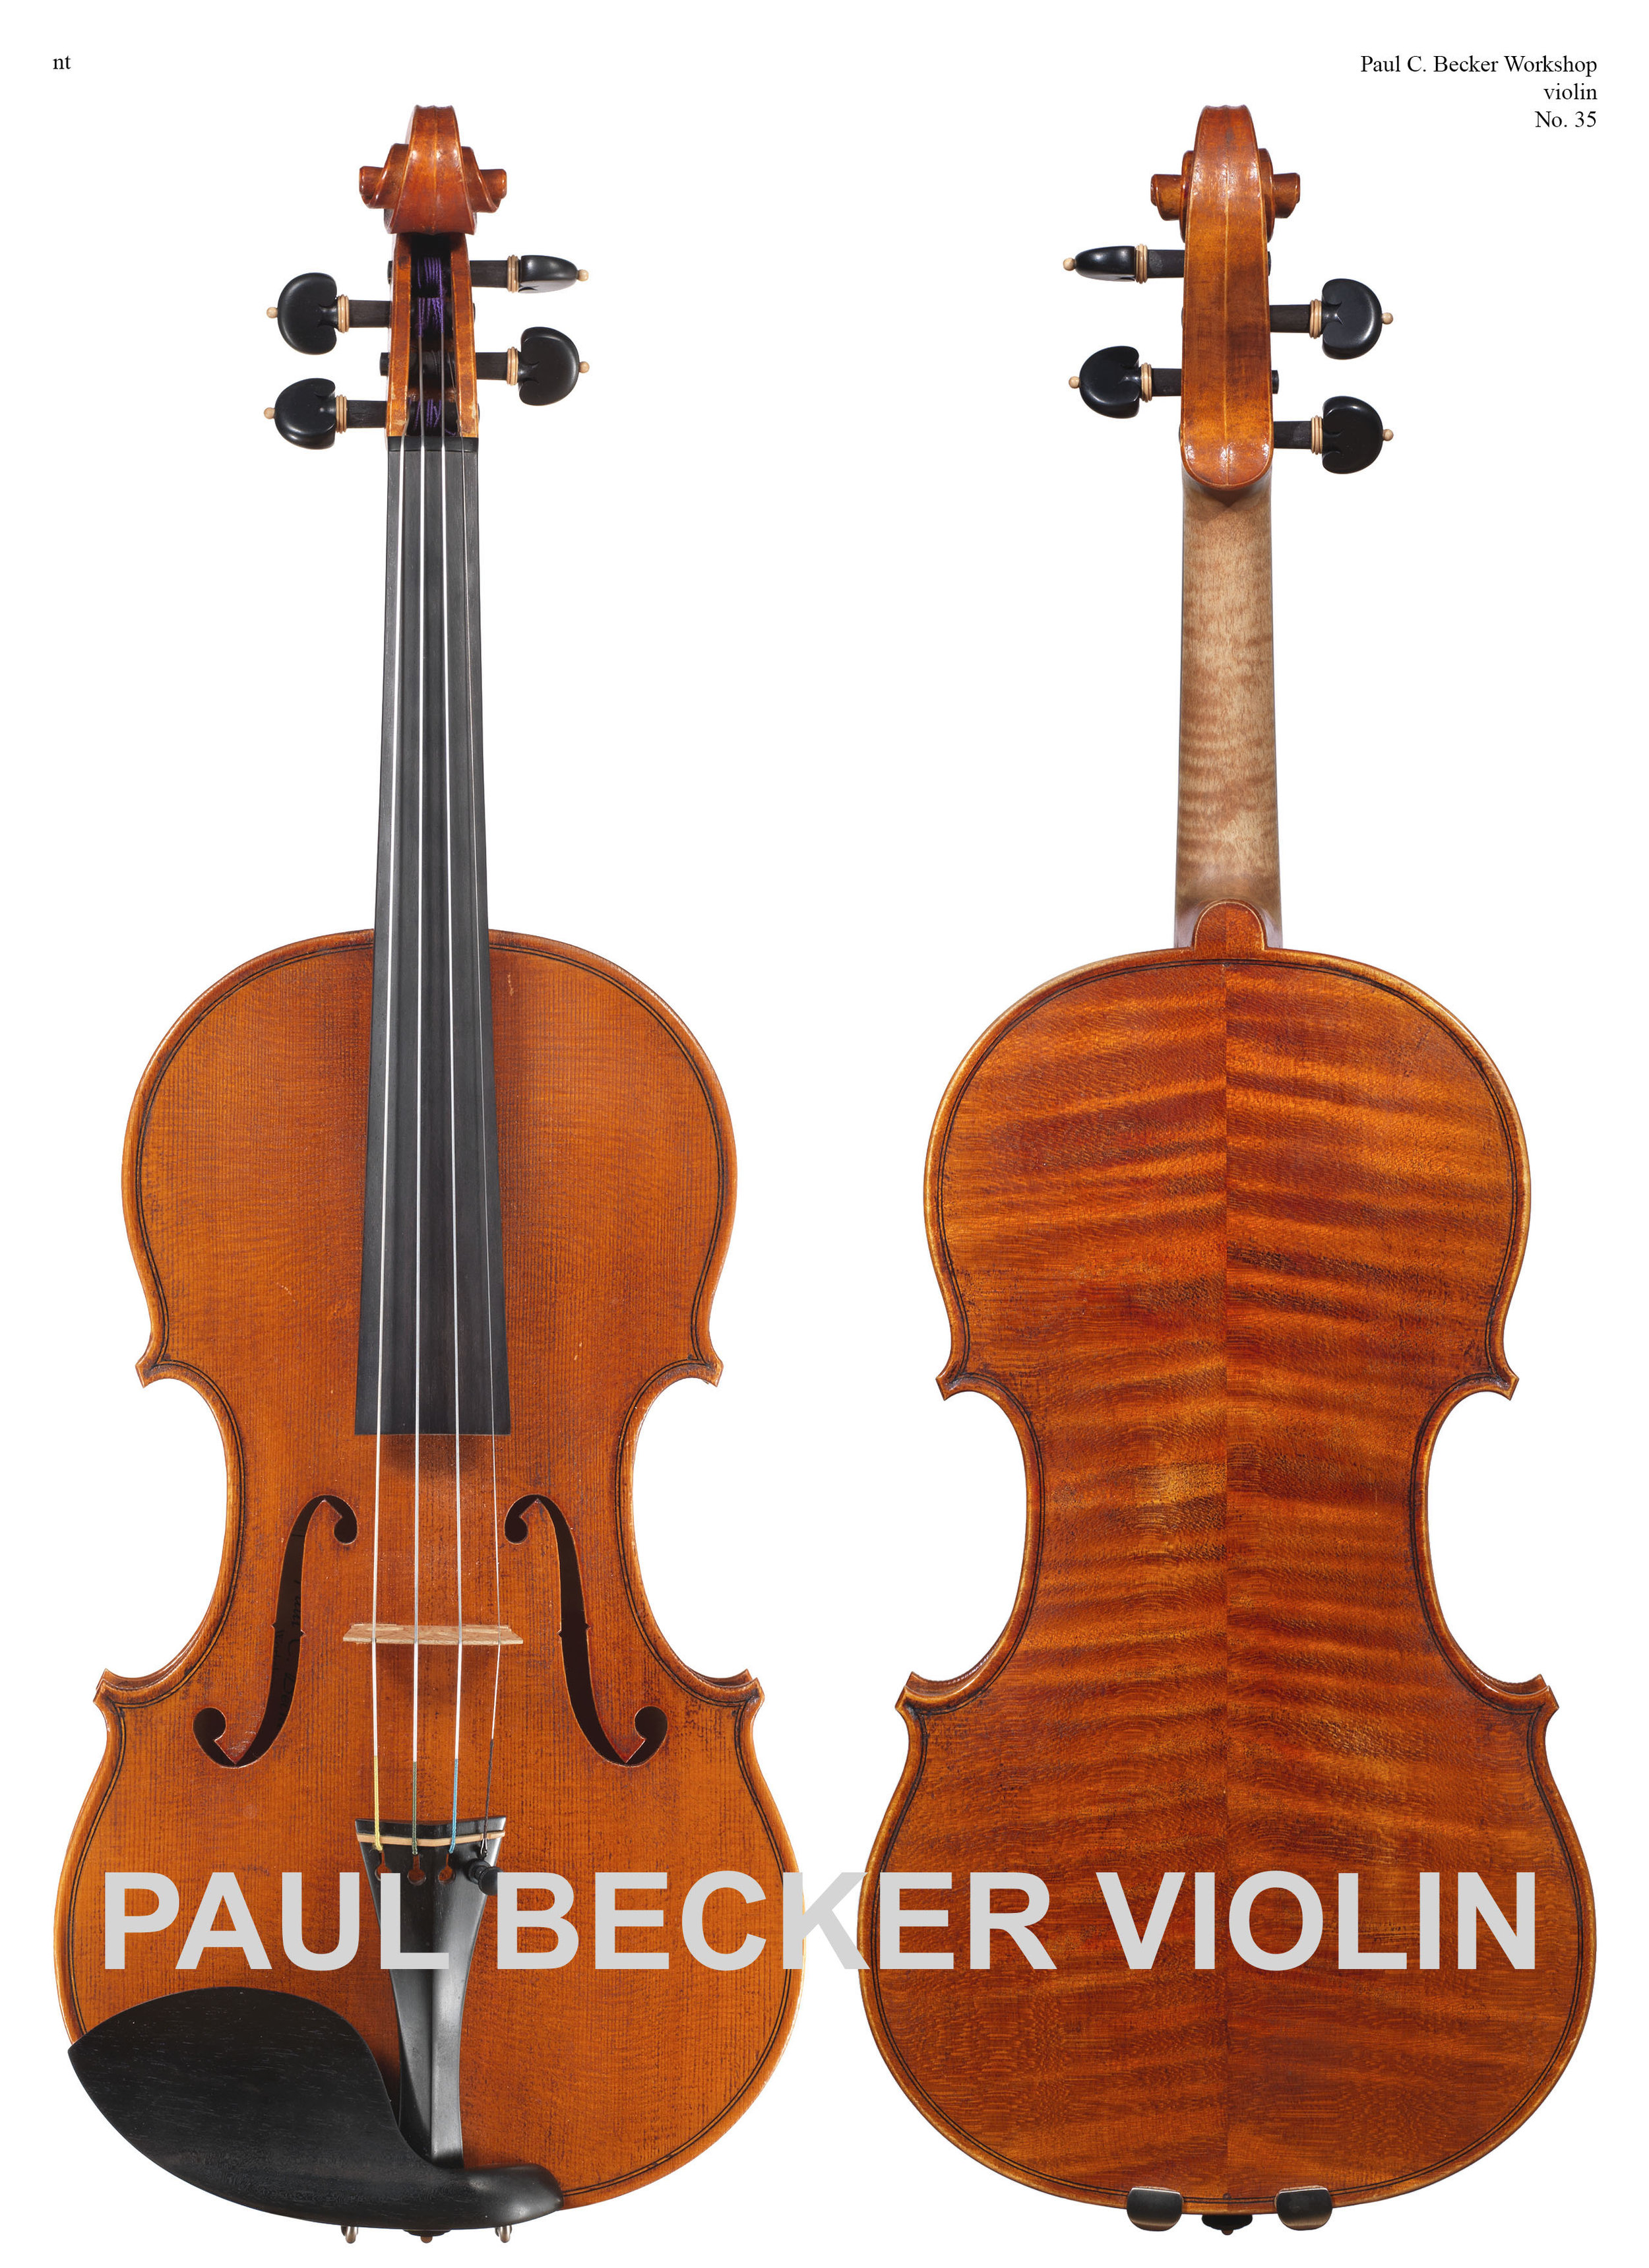 Paul Becker Workshop No. 35 Guarneri model with Traditional Becker Varnish. - The back in two pieces is of quarter cut fine Bosnian maple marked by a broad curl slanted down from the center join. Varnish is soft in texture and is of a deep red-orange color over yellow ground. Present Value: $20,000